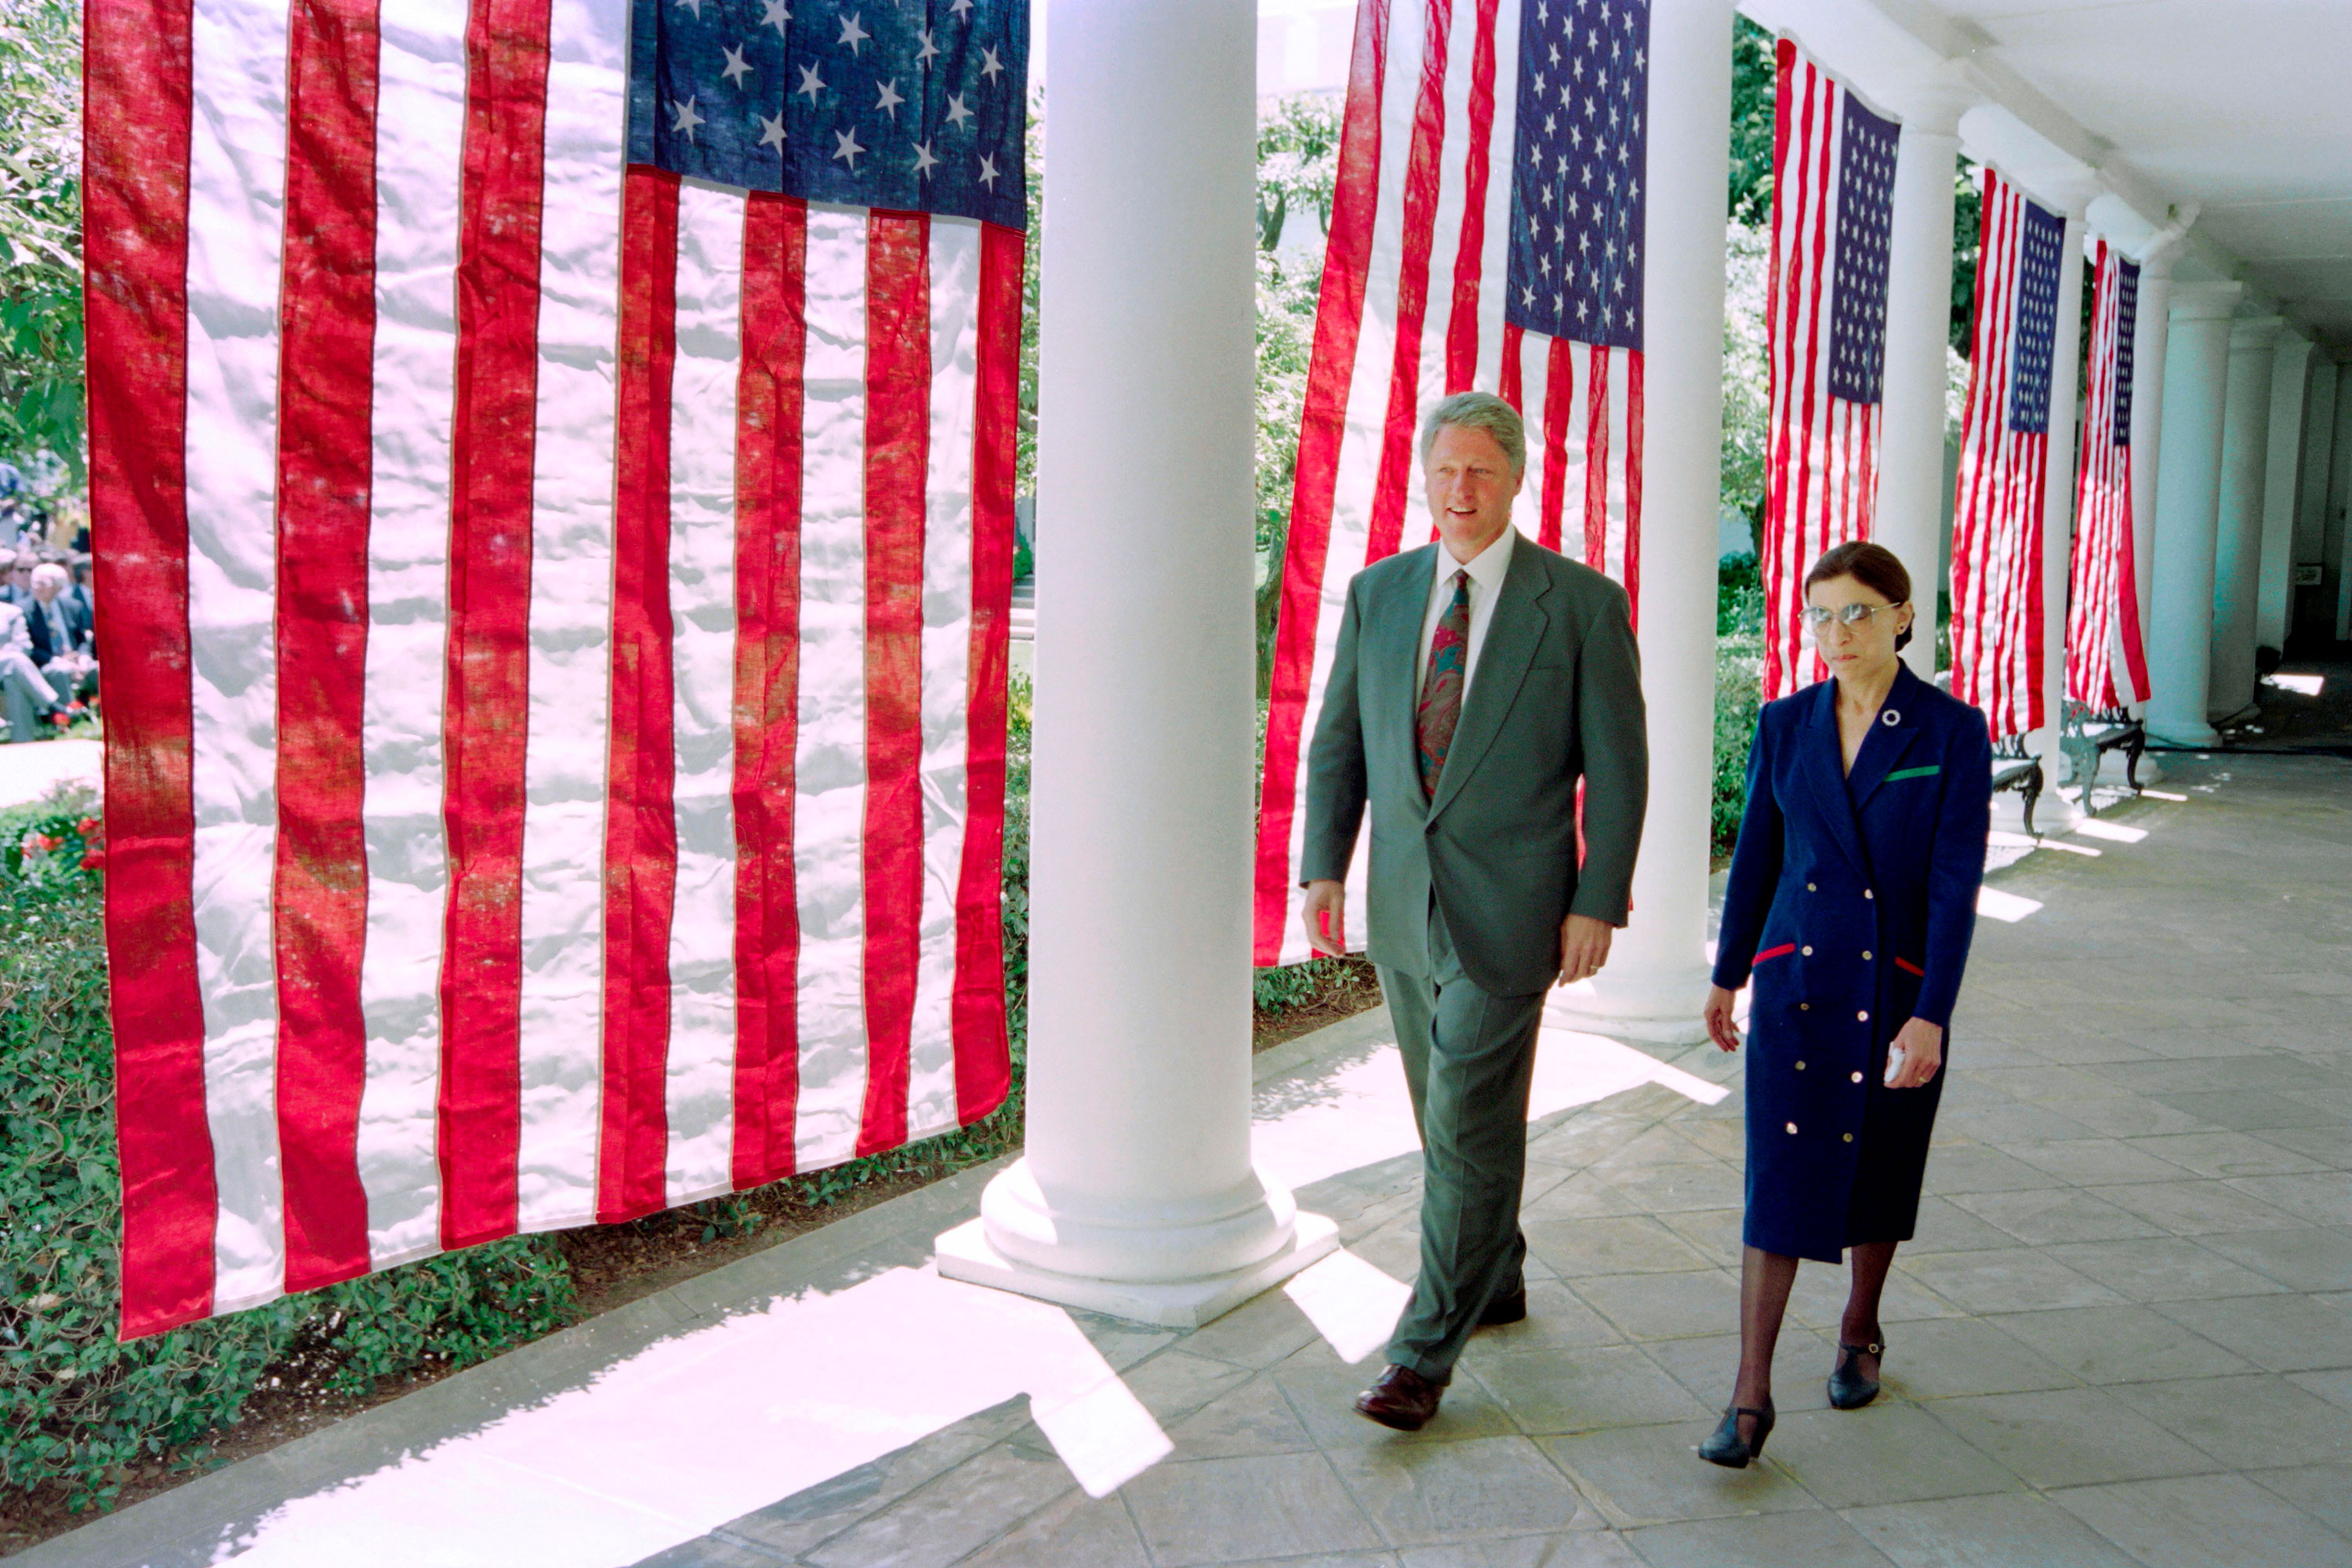 Former President Bill Clinton walks with Justice Ruth Bader Ginsburg on the way to a press conference at the White House on June 14, 1993.